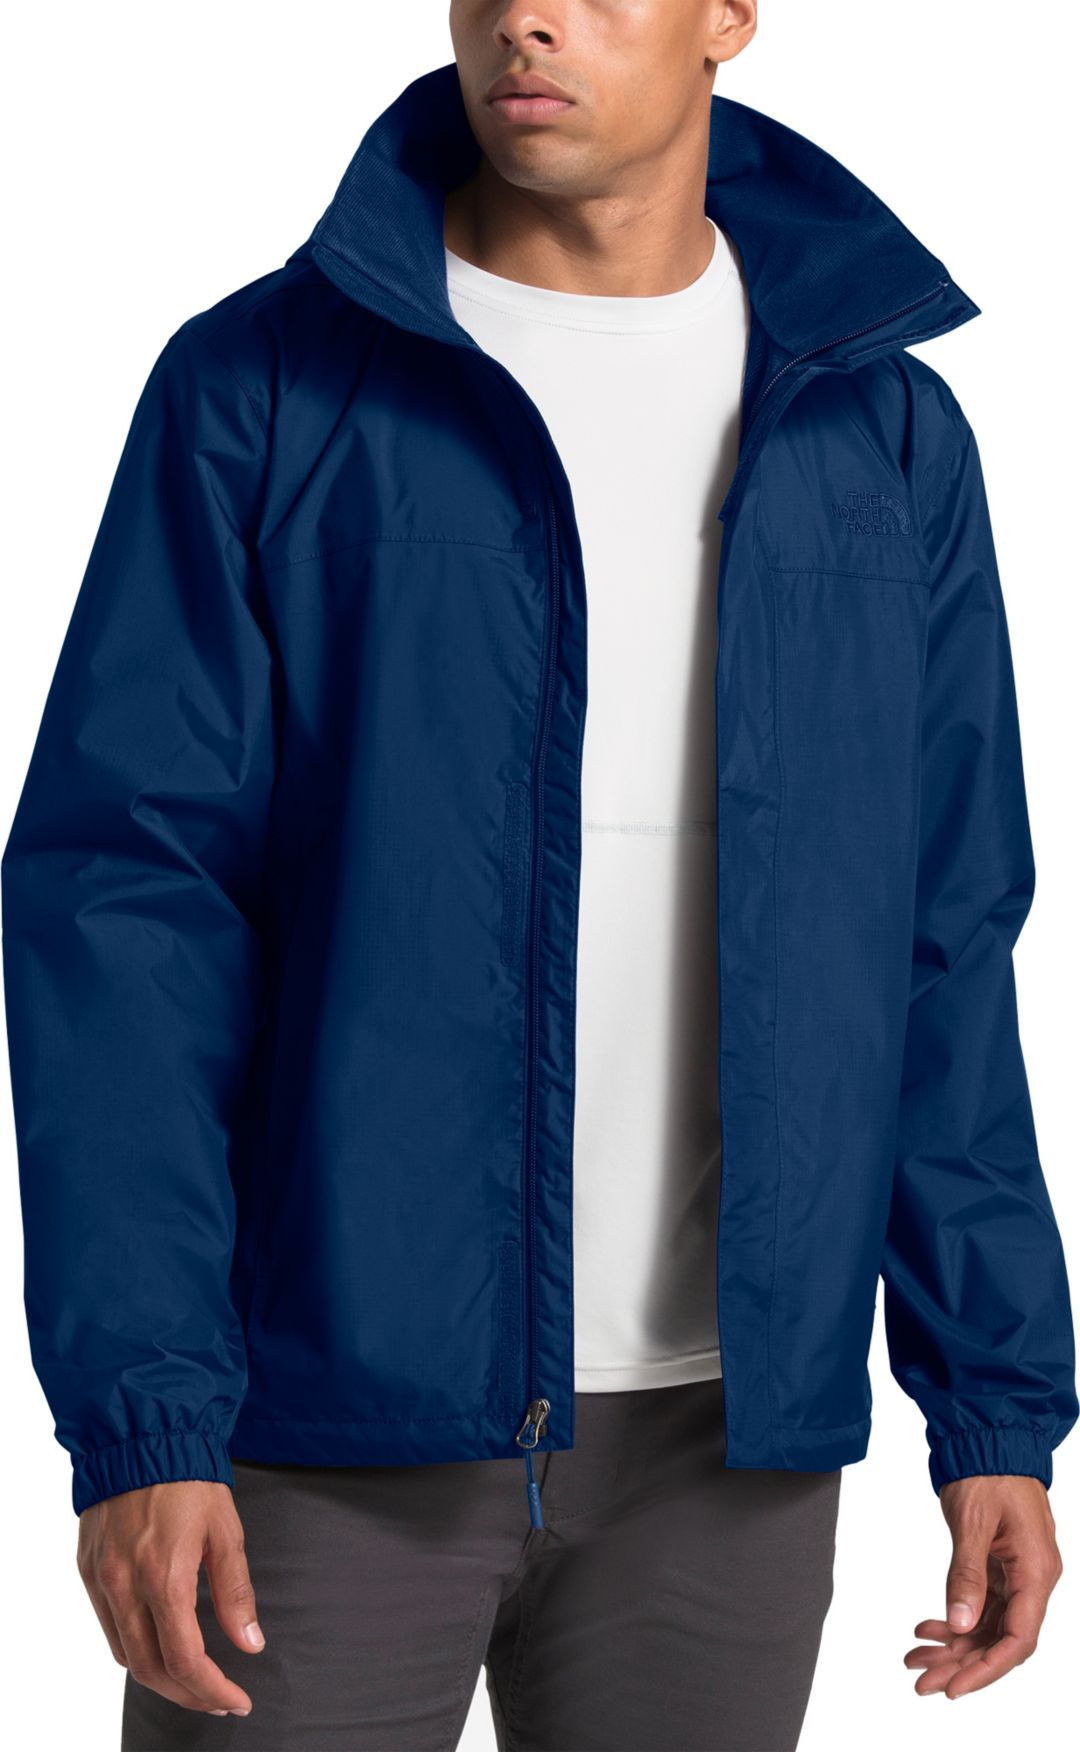 02872a073 The North Face Men's Resolve 2 Jacket